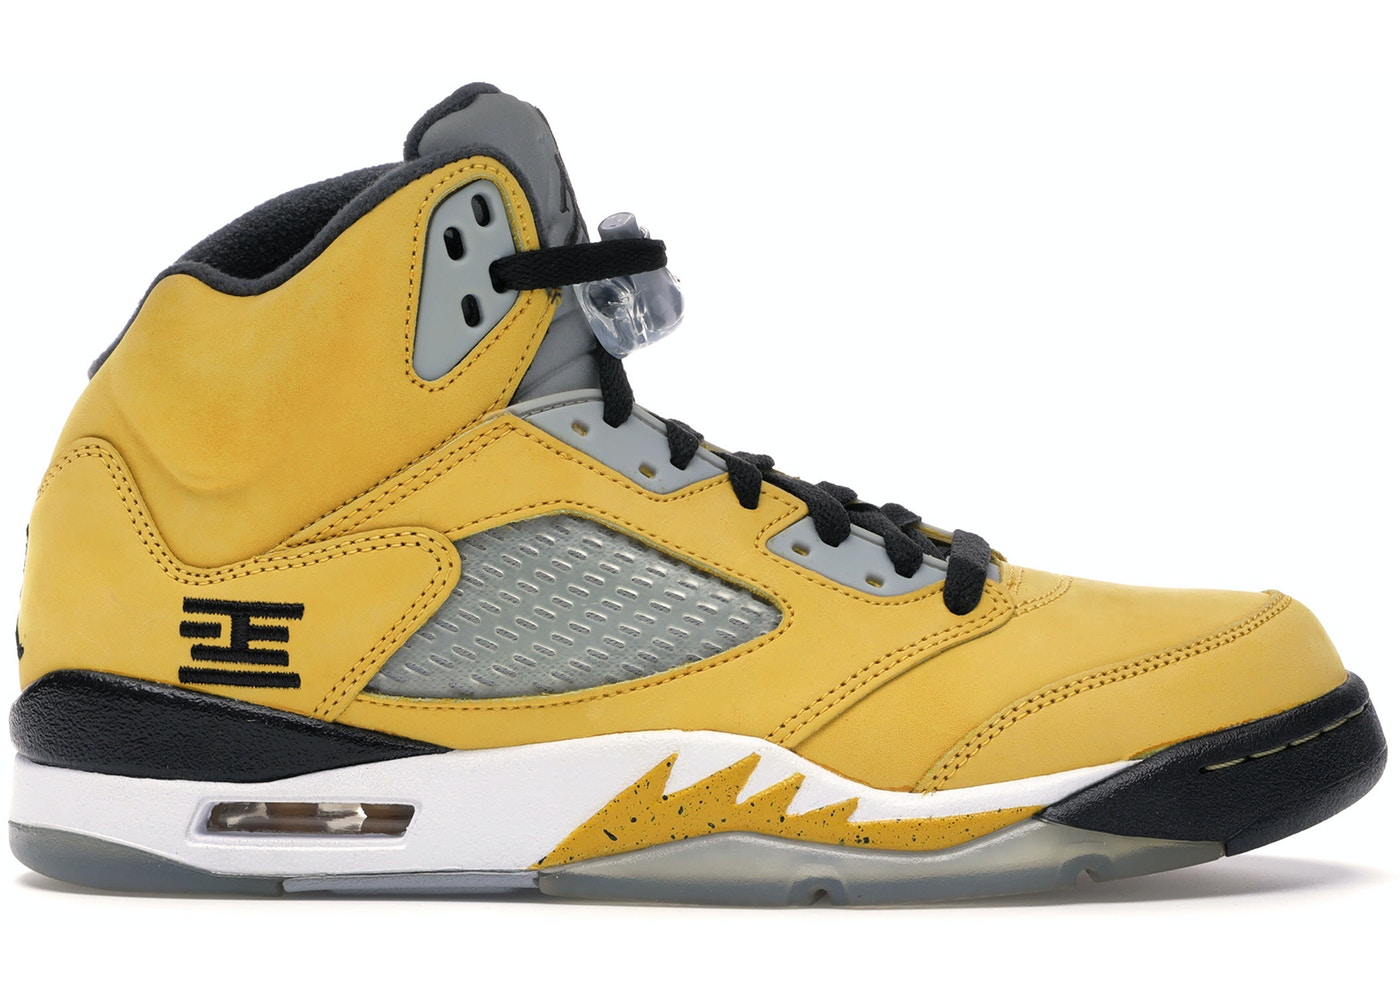 newest collection 5d796 5da49 Jordan 5 Retro Tokyo T23